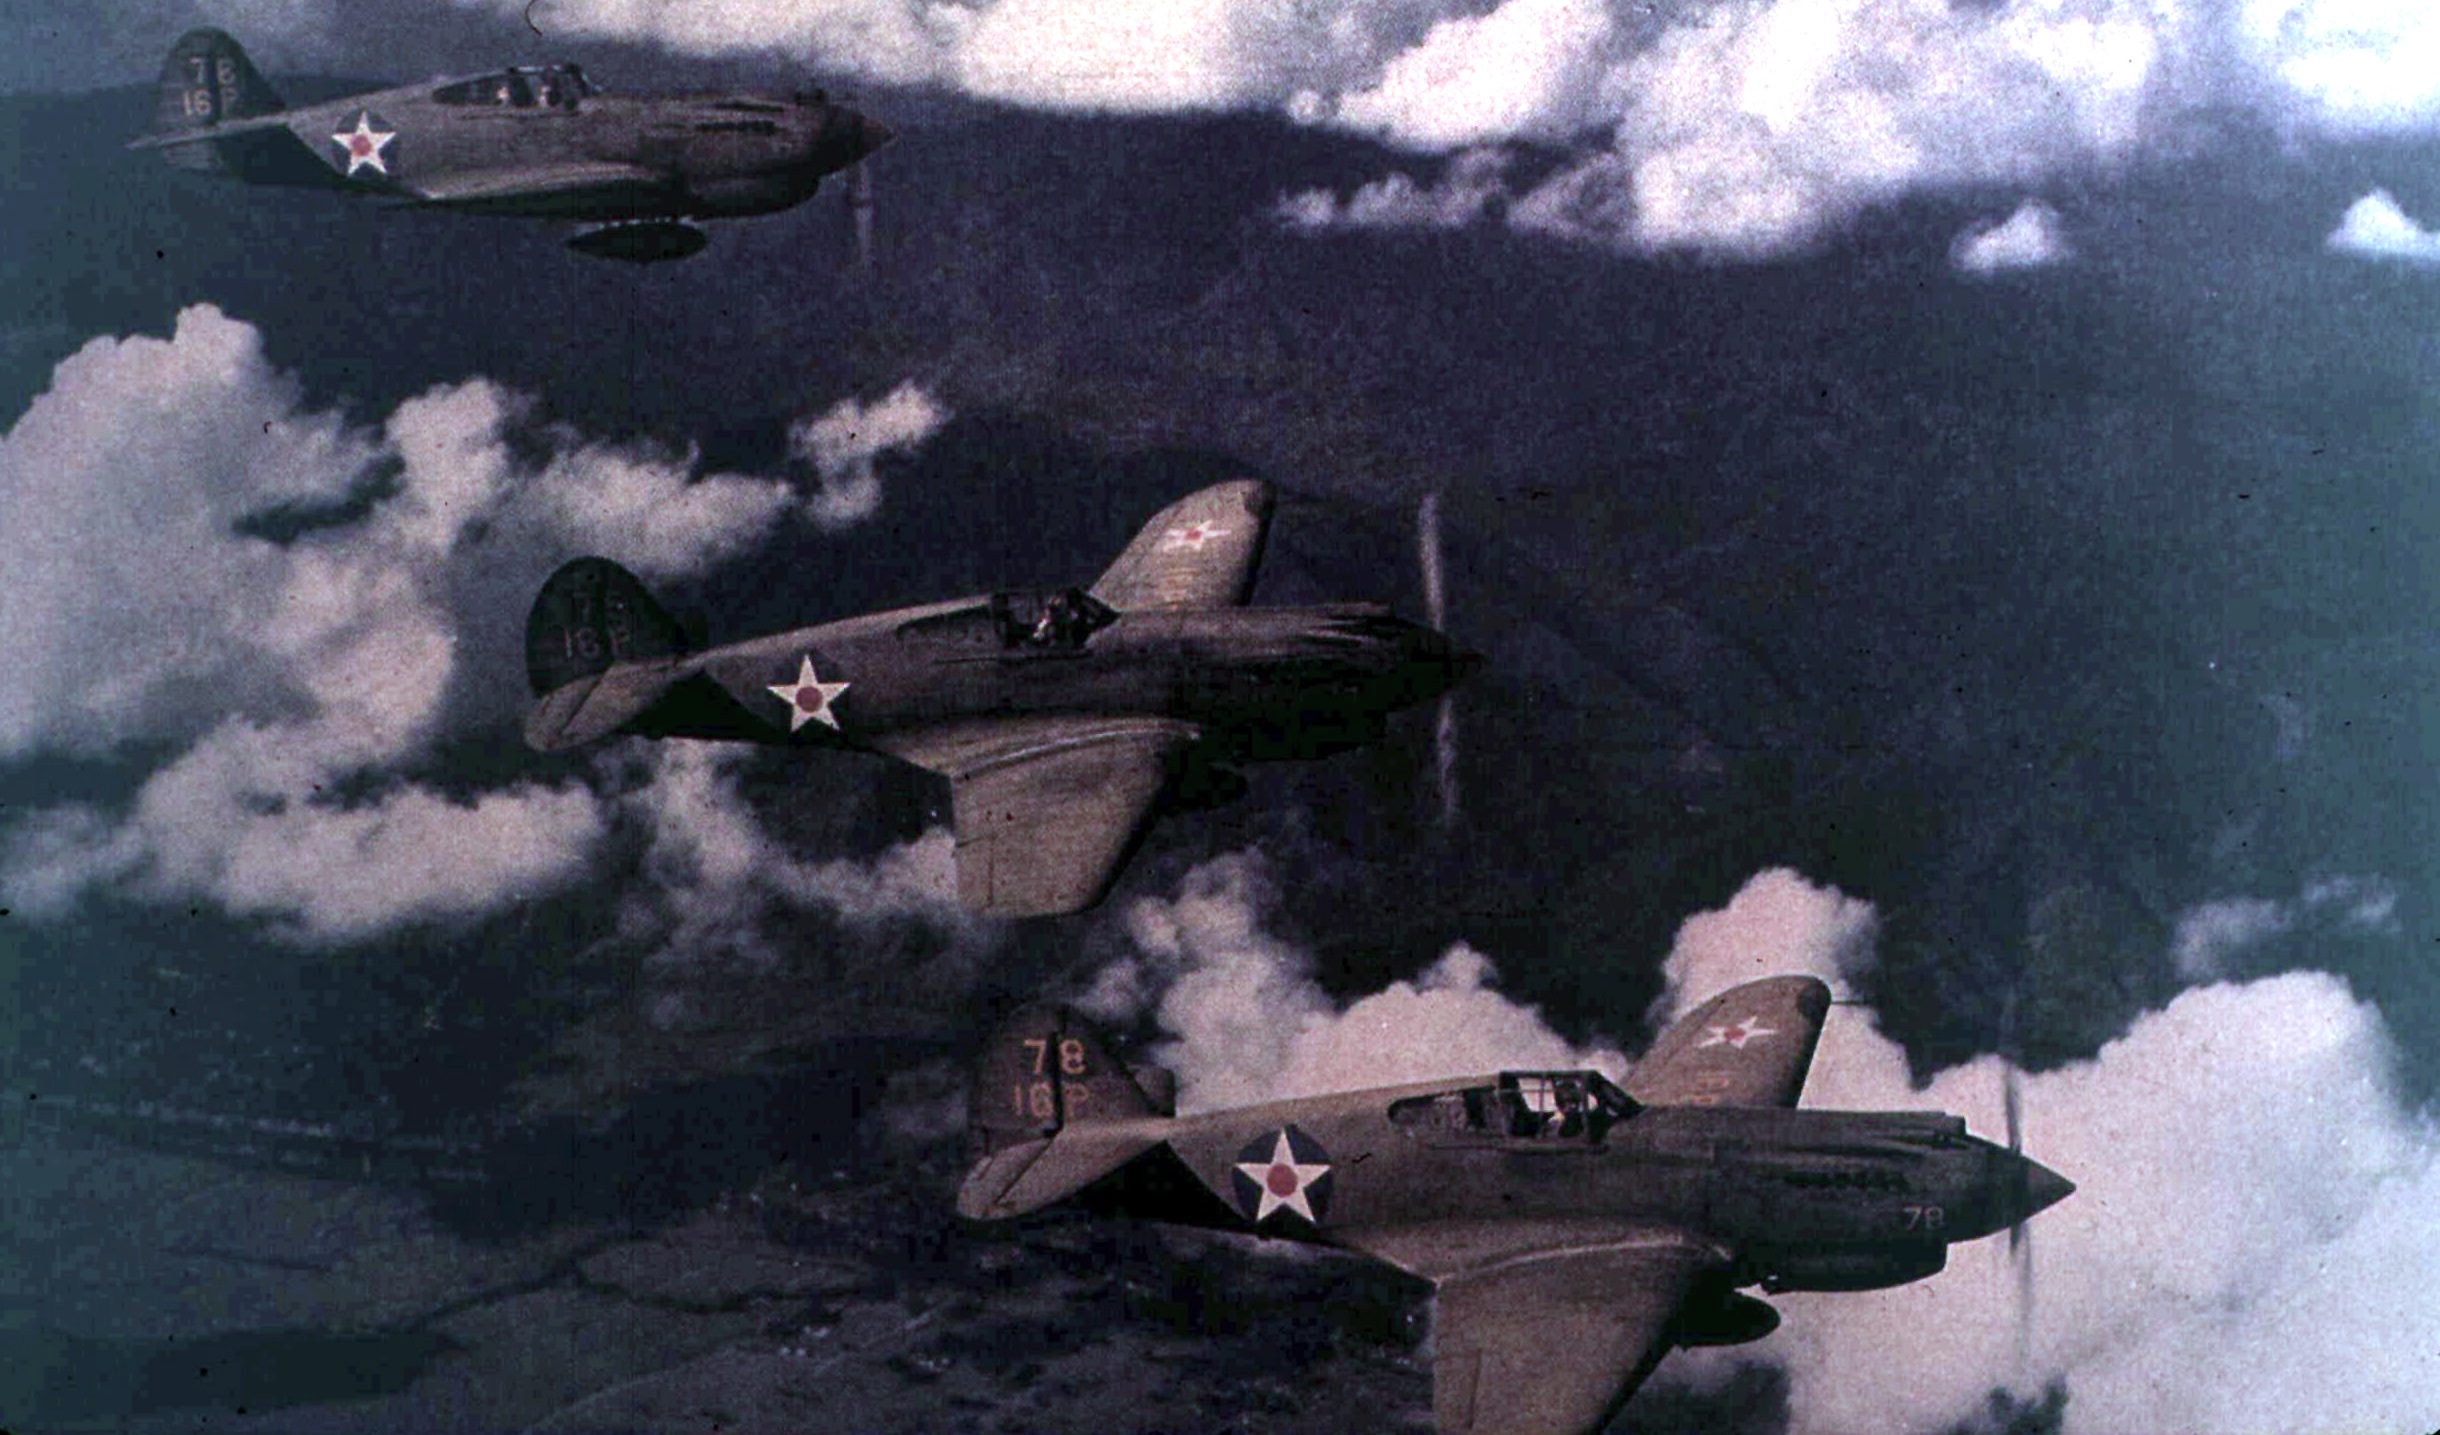 P-40s in color